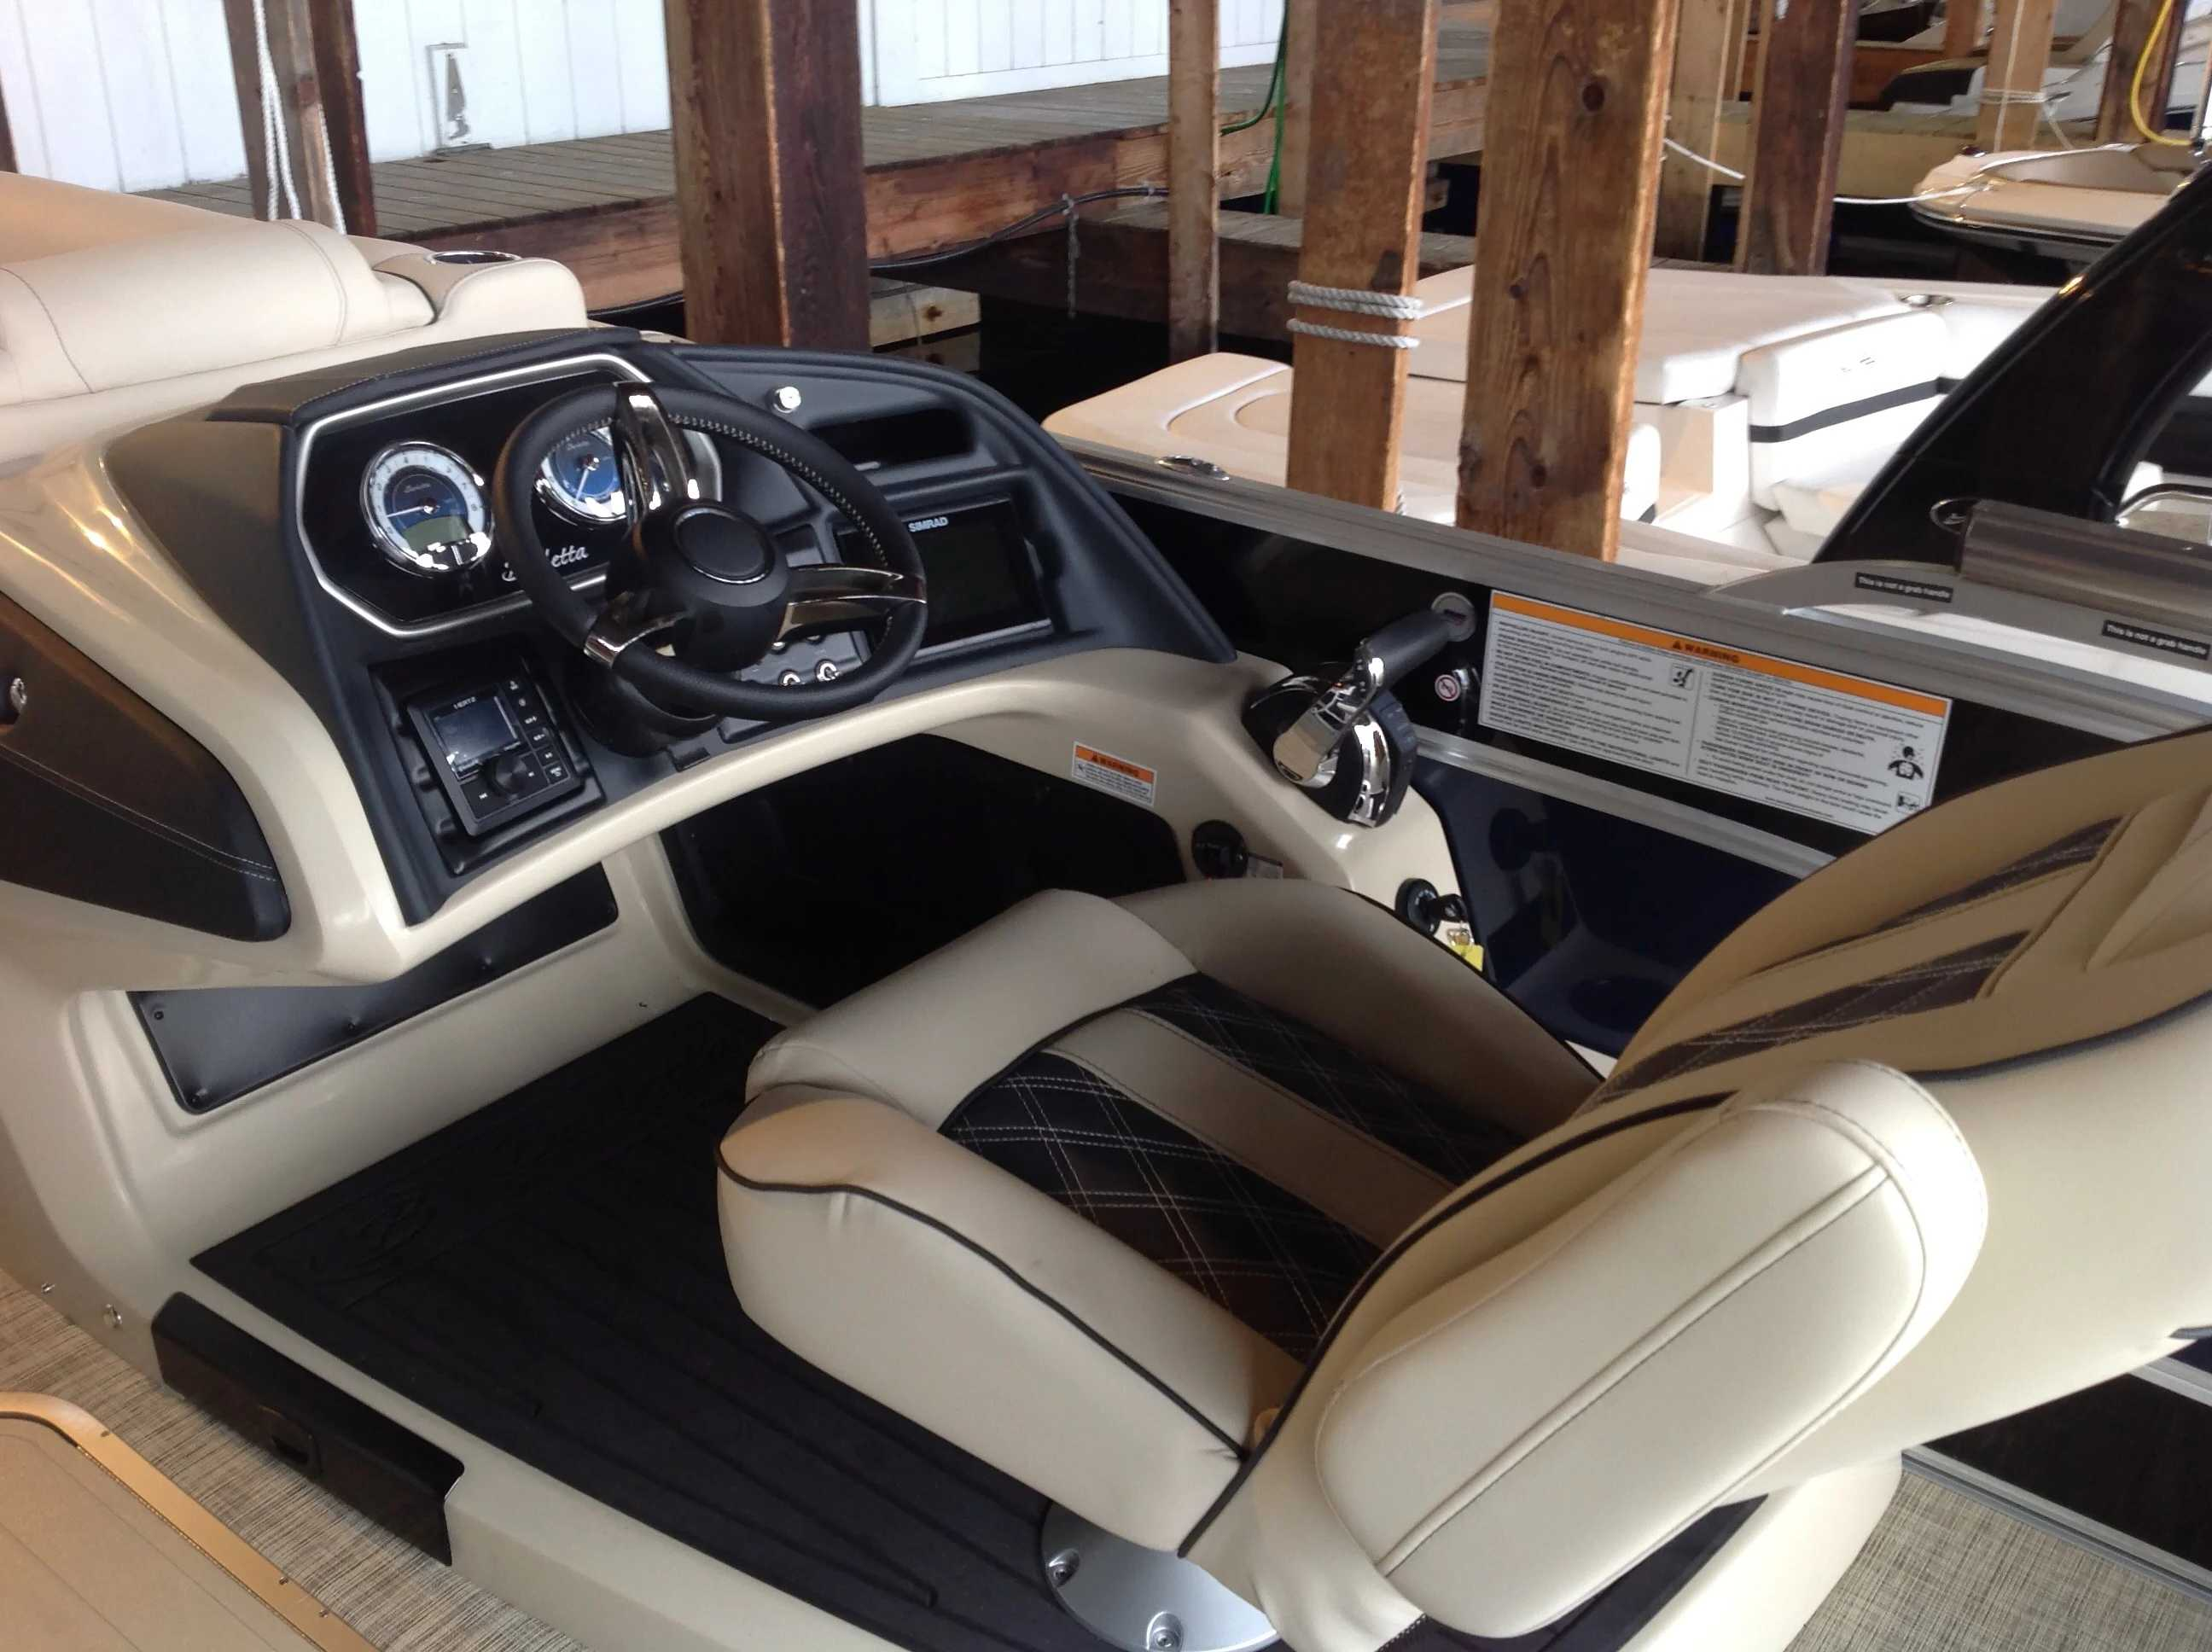 2021 Barletta boat for sale, model of the boat is L23UC & Image # 6 of 12